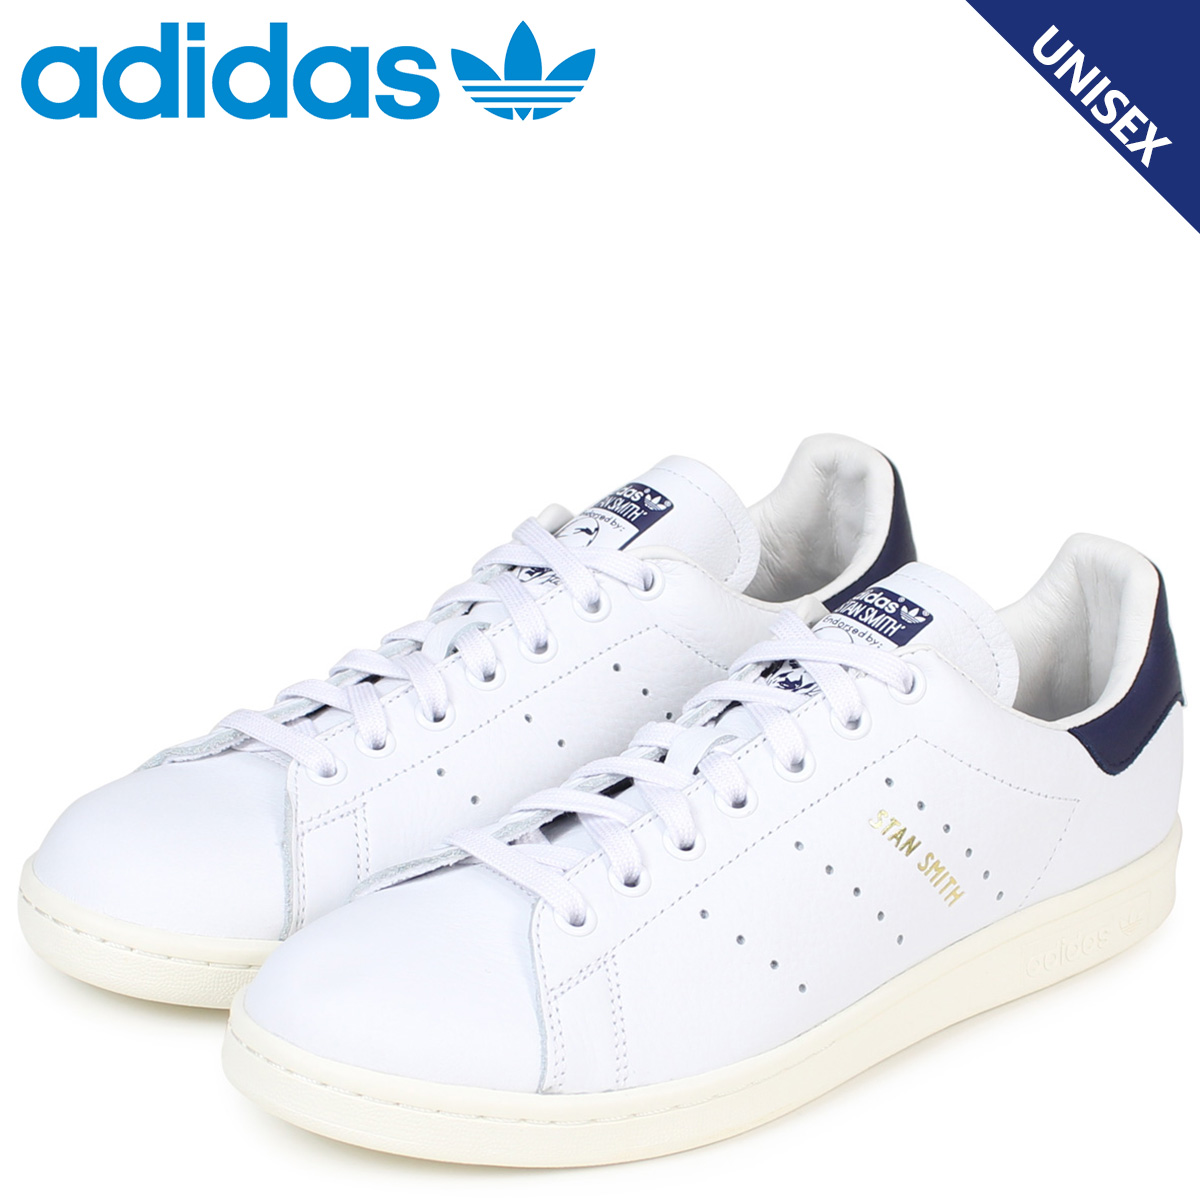 adidas originals Stan Smith Adidas sneakers STAN SMITH men CQ2870 shoes white [load planned Shinnyu load in reservation product 12/26 containing]